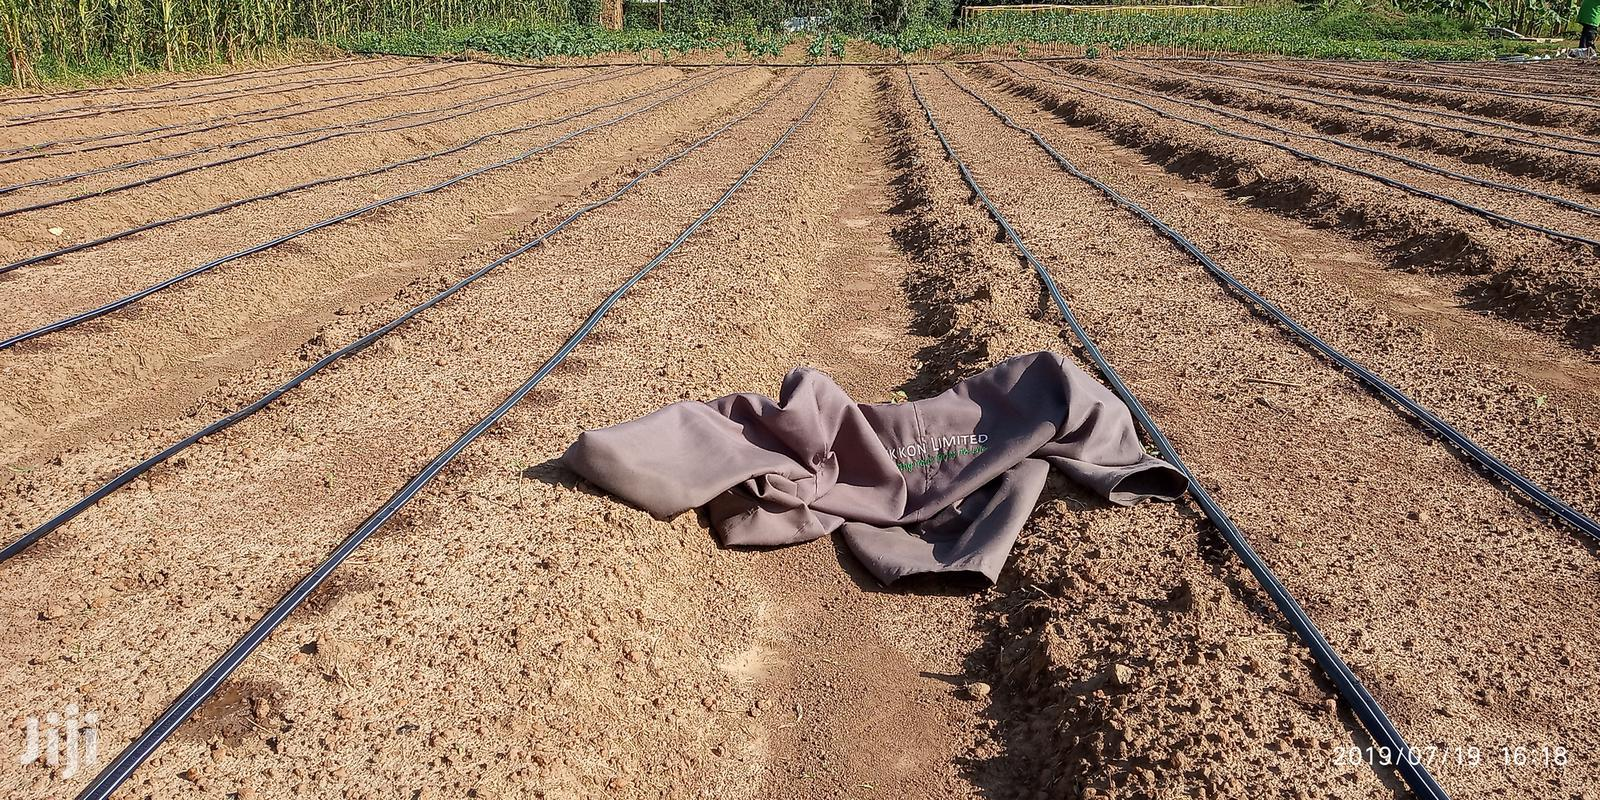 Affordable Drip Irrigation Kits For Eighth 1 Acre Plots/Farms